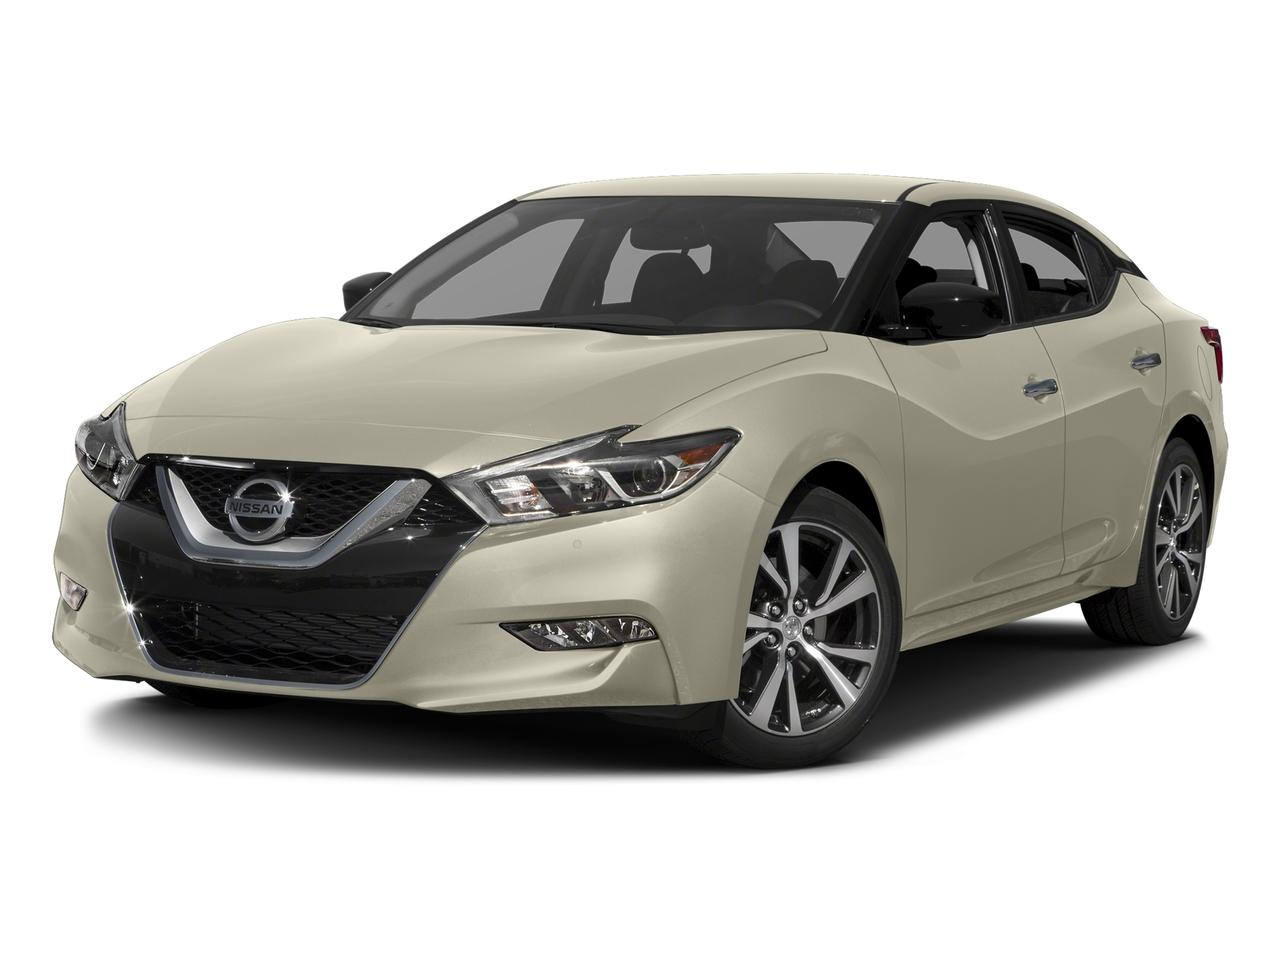 2017 Nissan Maxima Vehicle Photo in Jenkintown, PA 19046